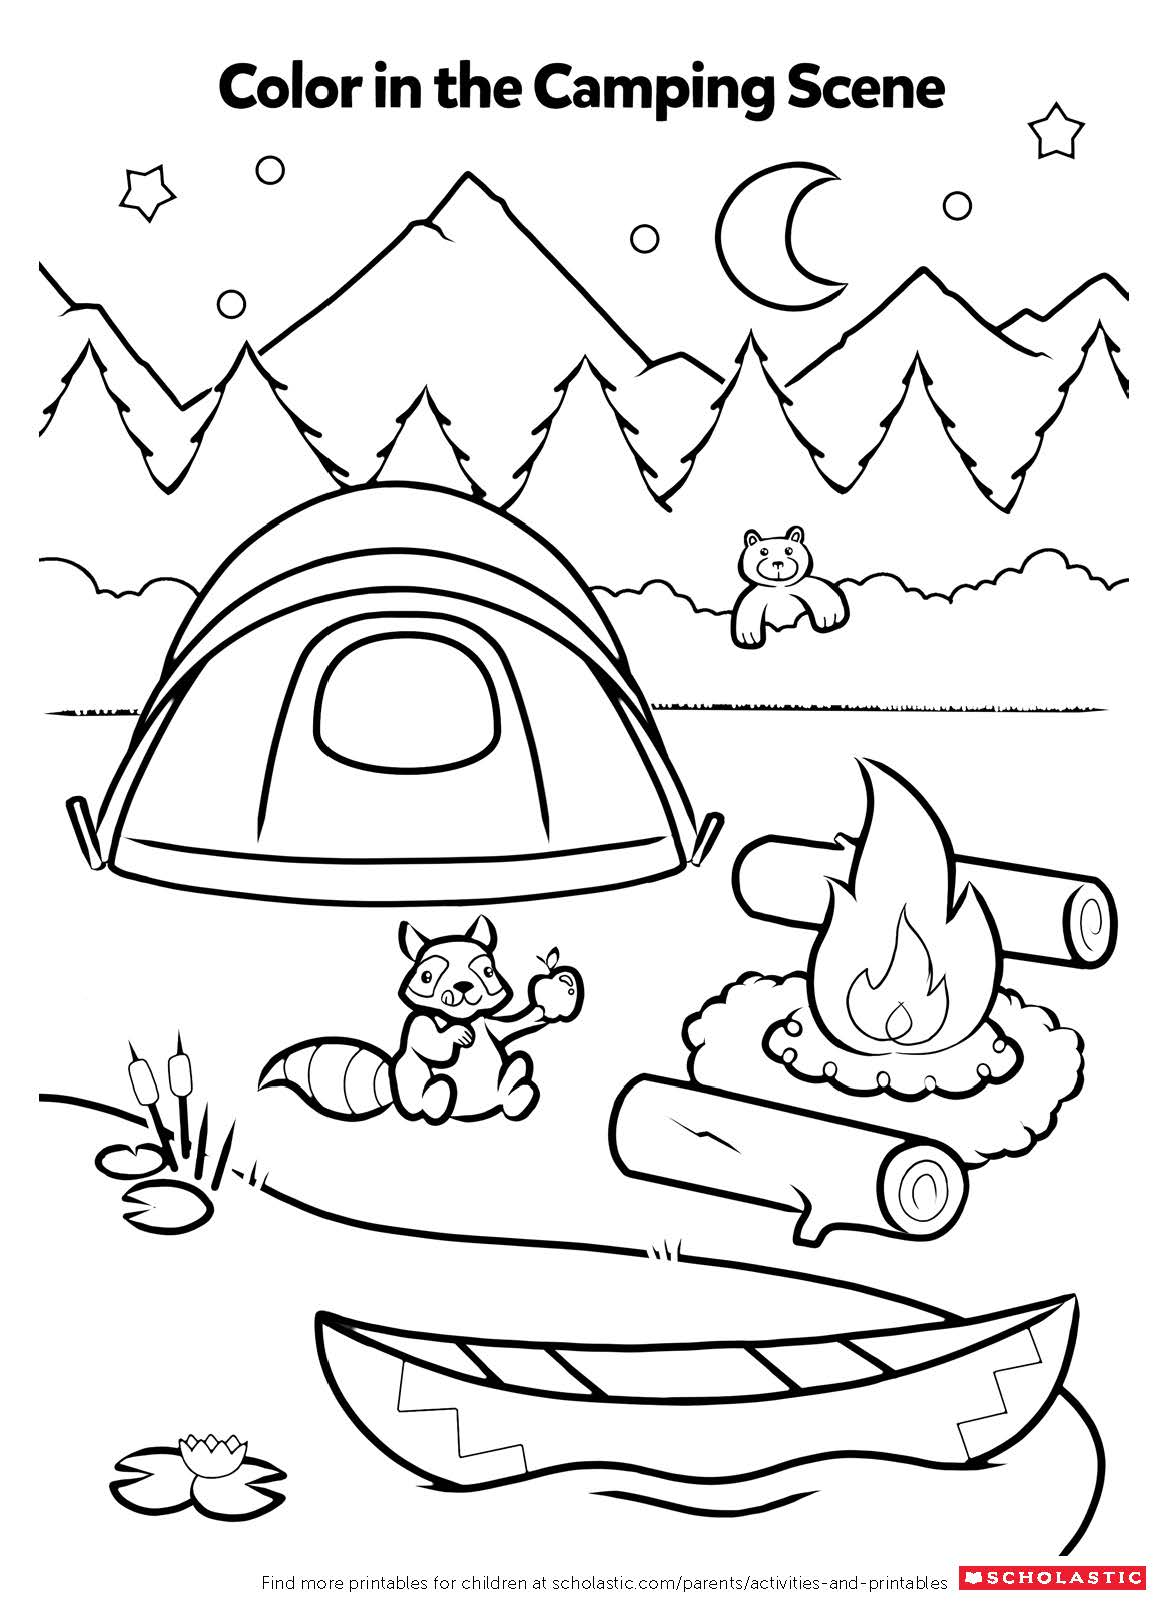 This is an image of Bewitching Free Printable Camping Coloring Pages